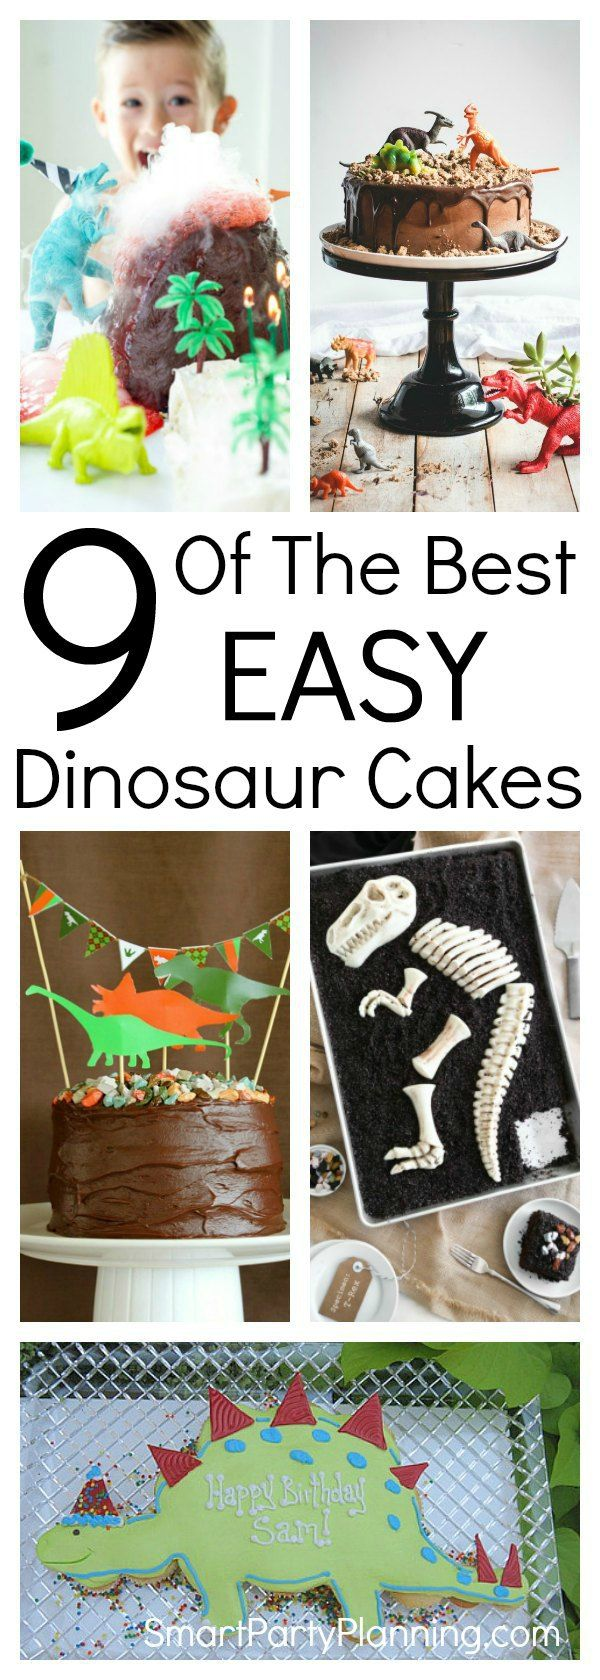 Learn how to make easy dinosaur cakes for a birthday the kids will remember forever. With simple ideas and tutorials, you will have just as much fun making the cake as the kids will eating it. It's easier than you think to make an awesome DIY cake.  This is definitely one for the boys! #Dinosaurcakes #DIY #Simple #Easy #Birthday